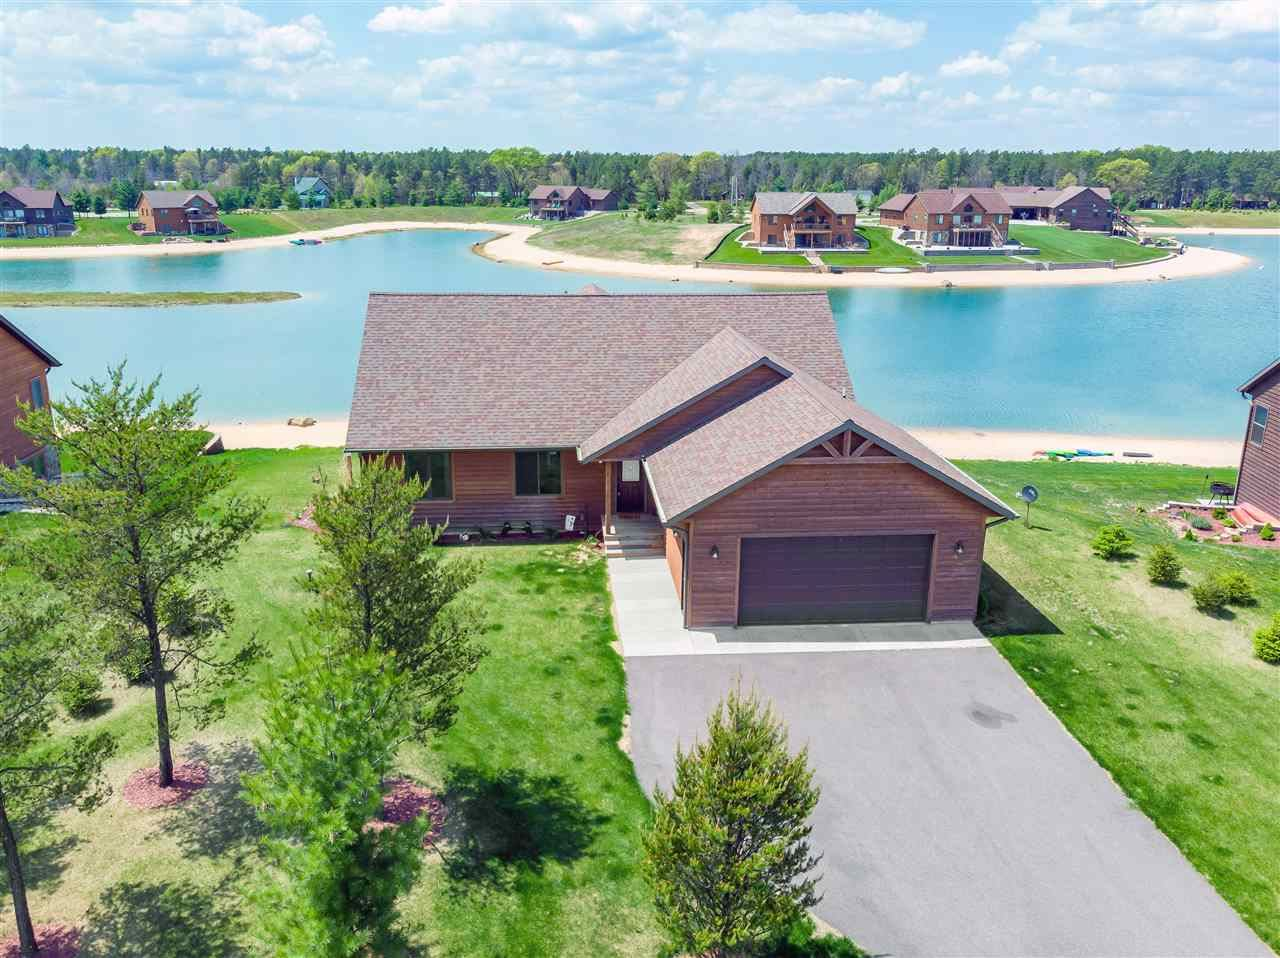 W5614 Island Lake Dr, New Lisbon, WI 53950 - #: 1903657